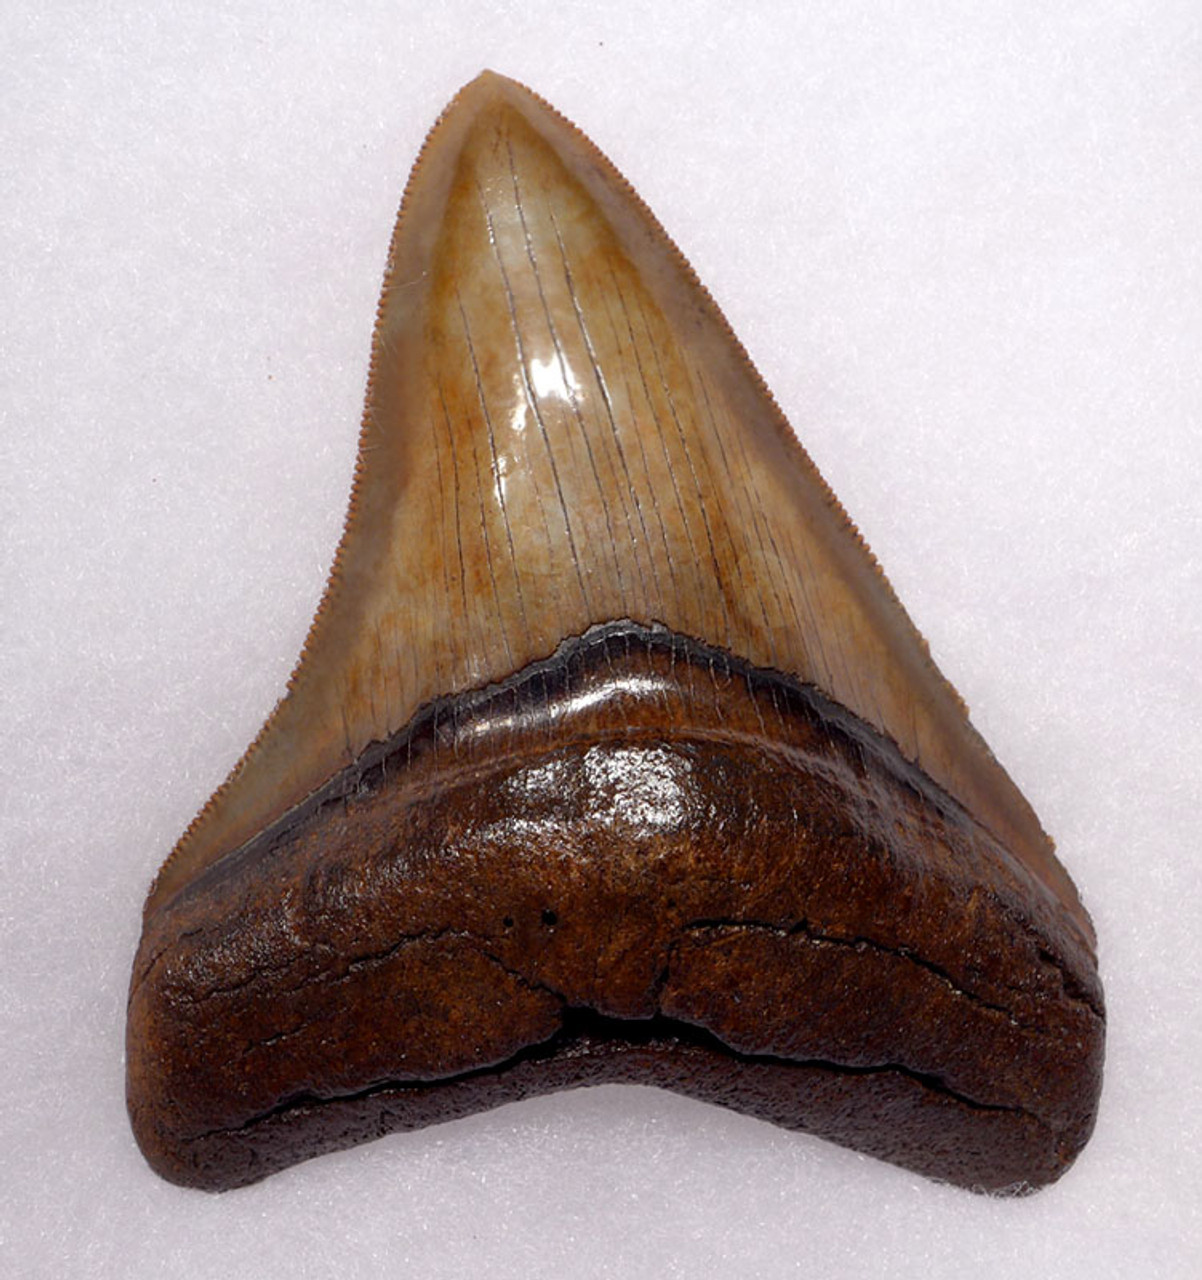 SH6-314 - FINEST COLLECTOR GRADE RED GREEN SPOTTED 3.75 INCH MEGALODON SHARK TOOTH